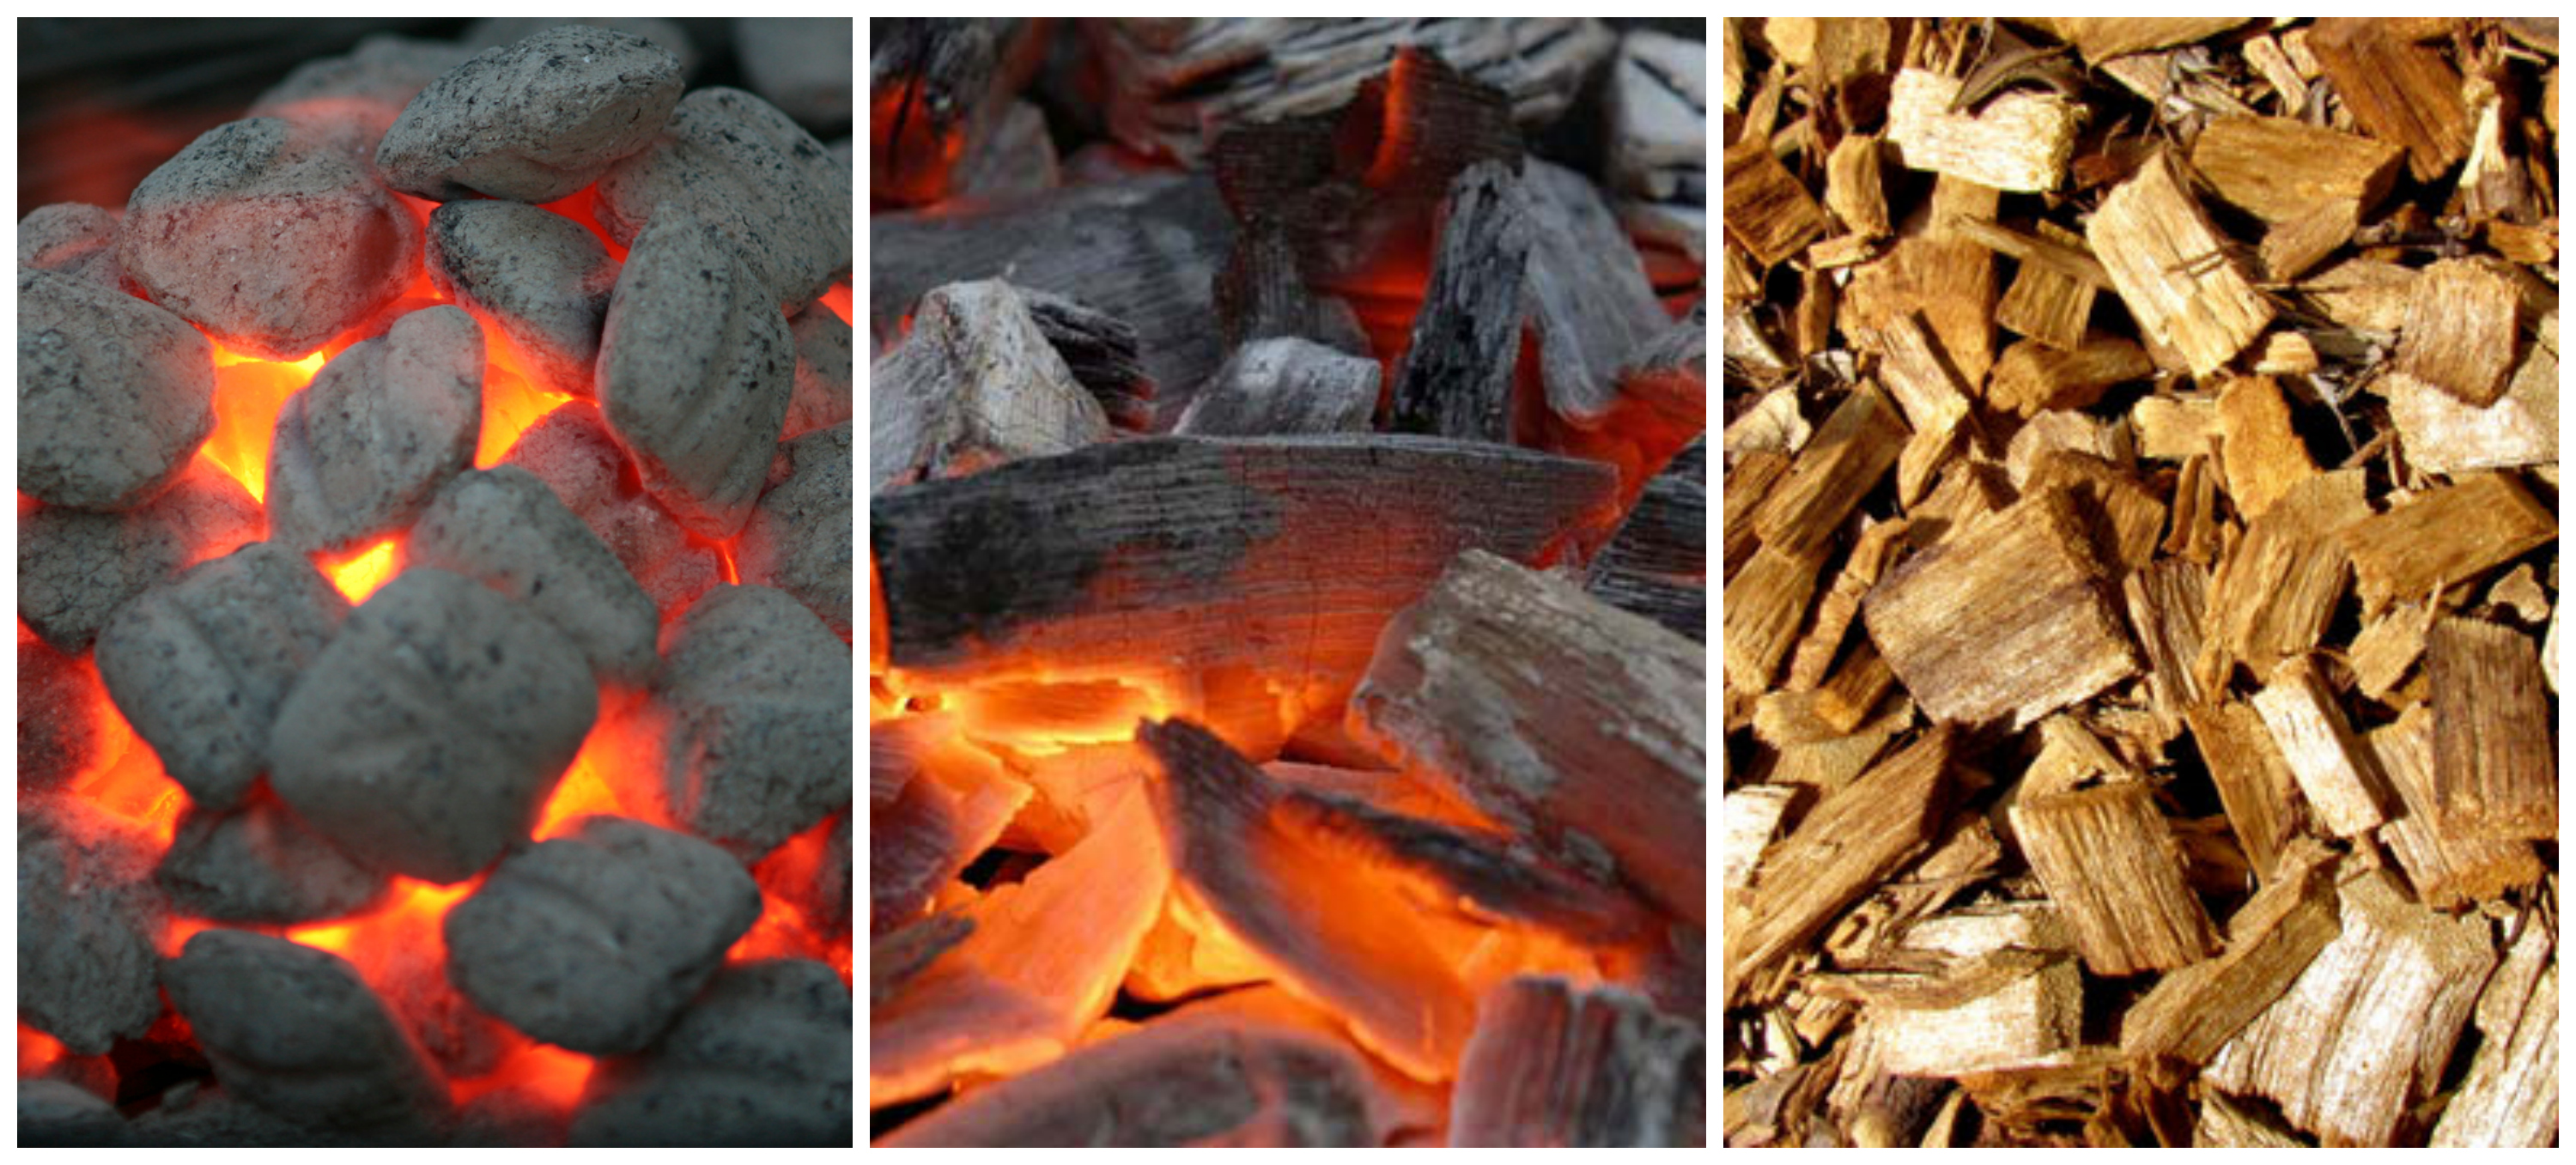 3 Ways To Light Your Grill: Charcoal Briquettes vs. Lump Charcoal vs. Wood